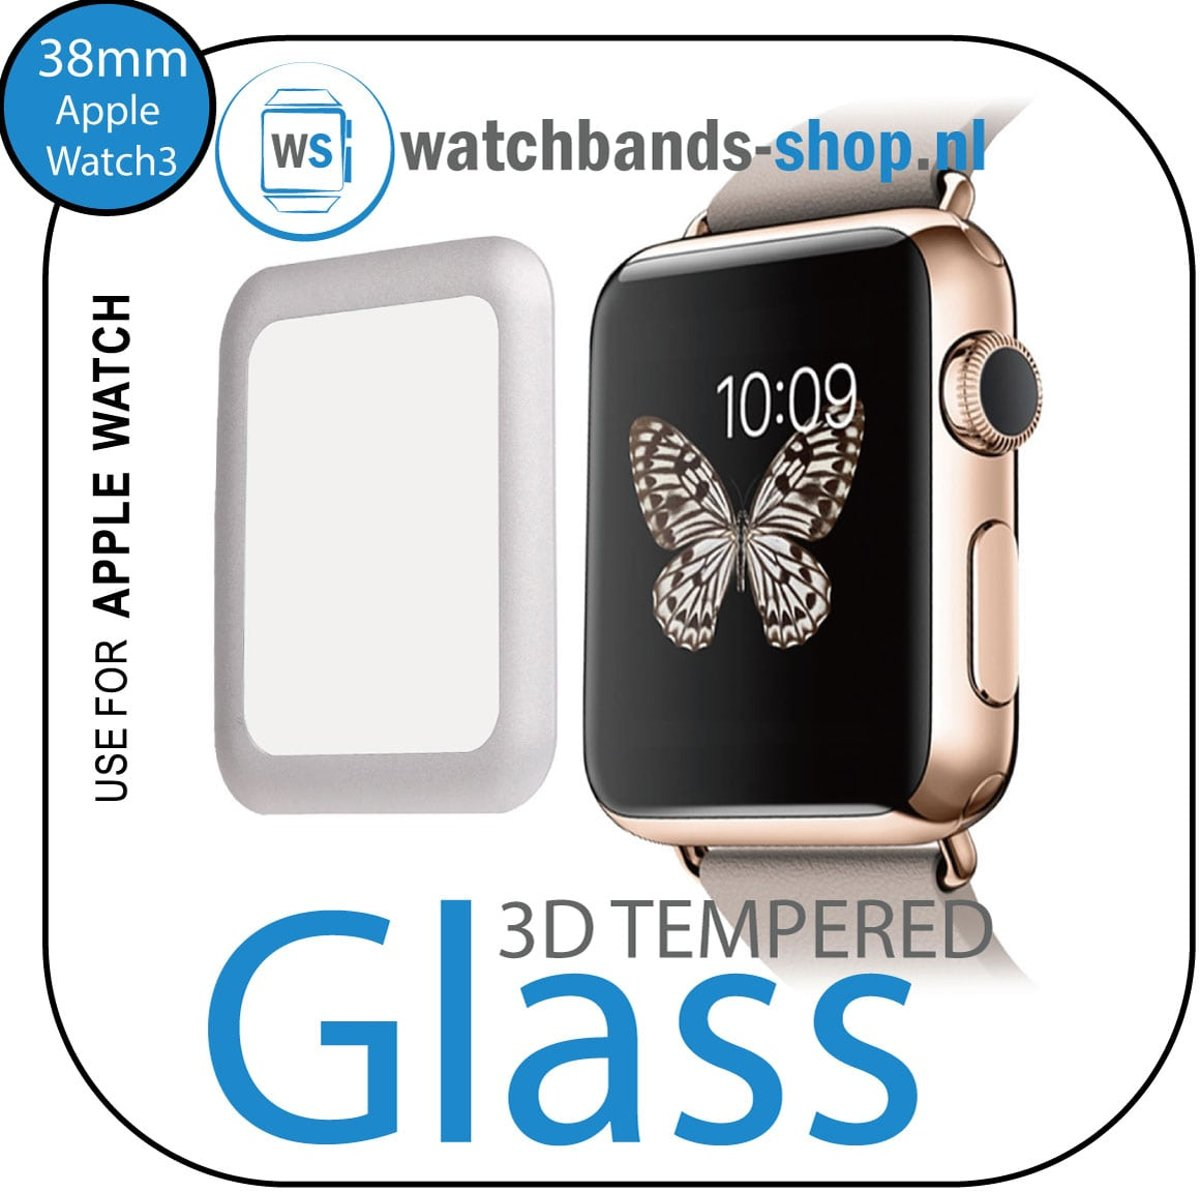 38mm full Cover 3D Tempered Glass Screen Protector For Apple watch / iWatch 3 silver edge Watchbands-shop.nl kopen